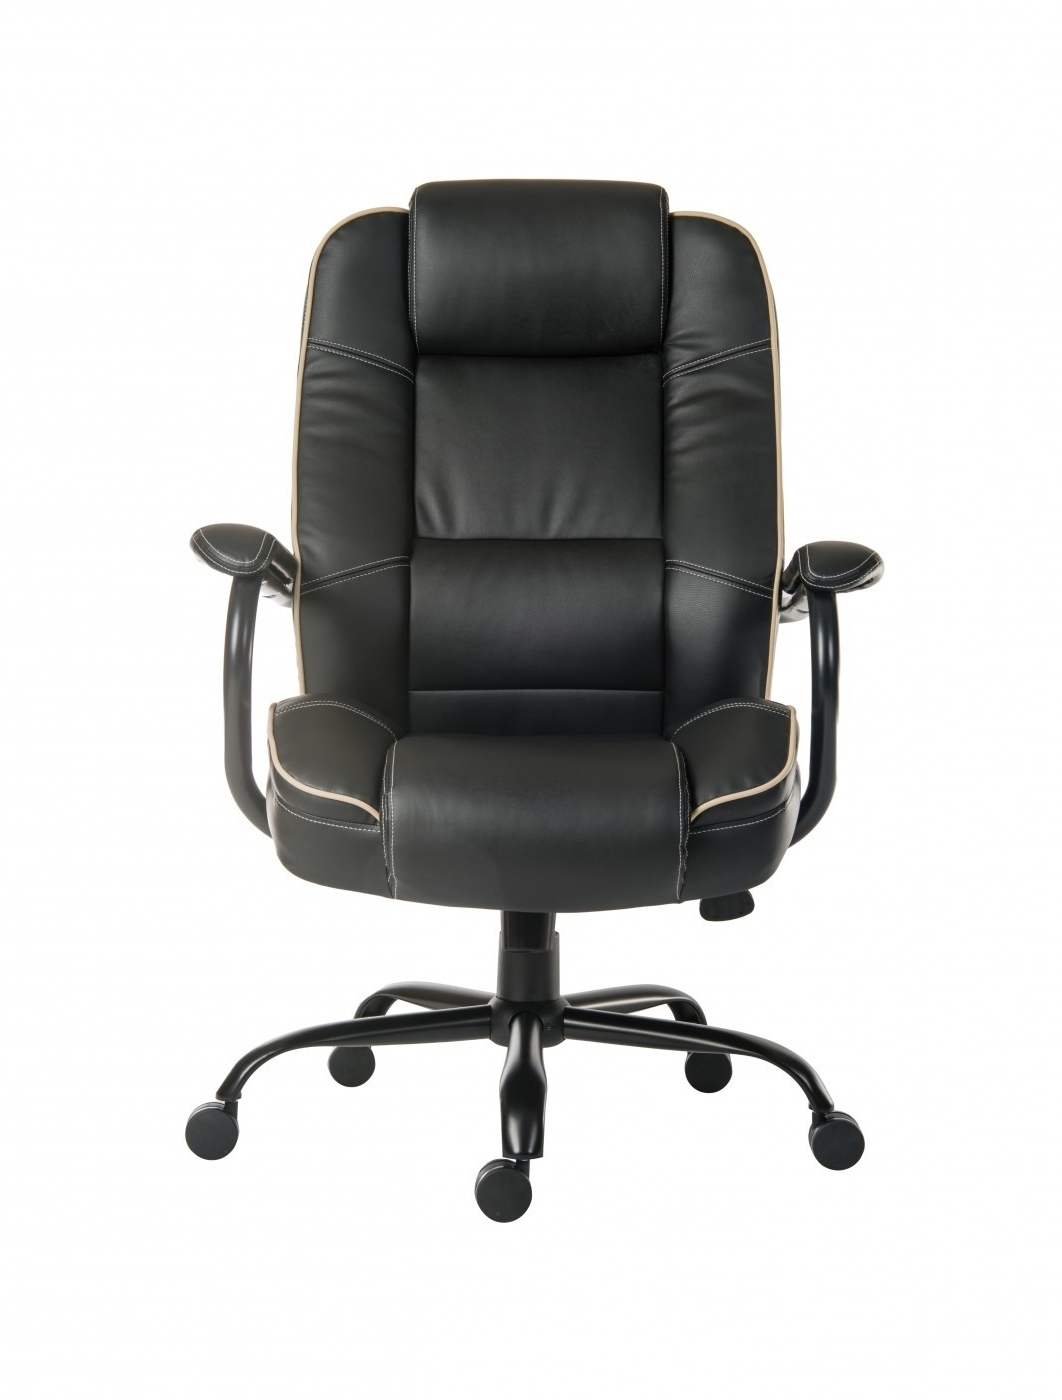 Heavy Duty Leather Executive Office Chair • Office Chairs Within Well Known Heavy Duty Executive Office Chairs (View 10 of 20)